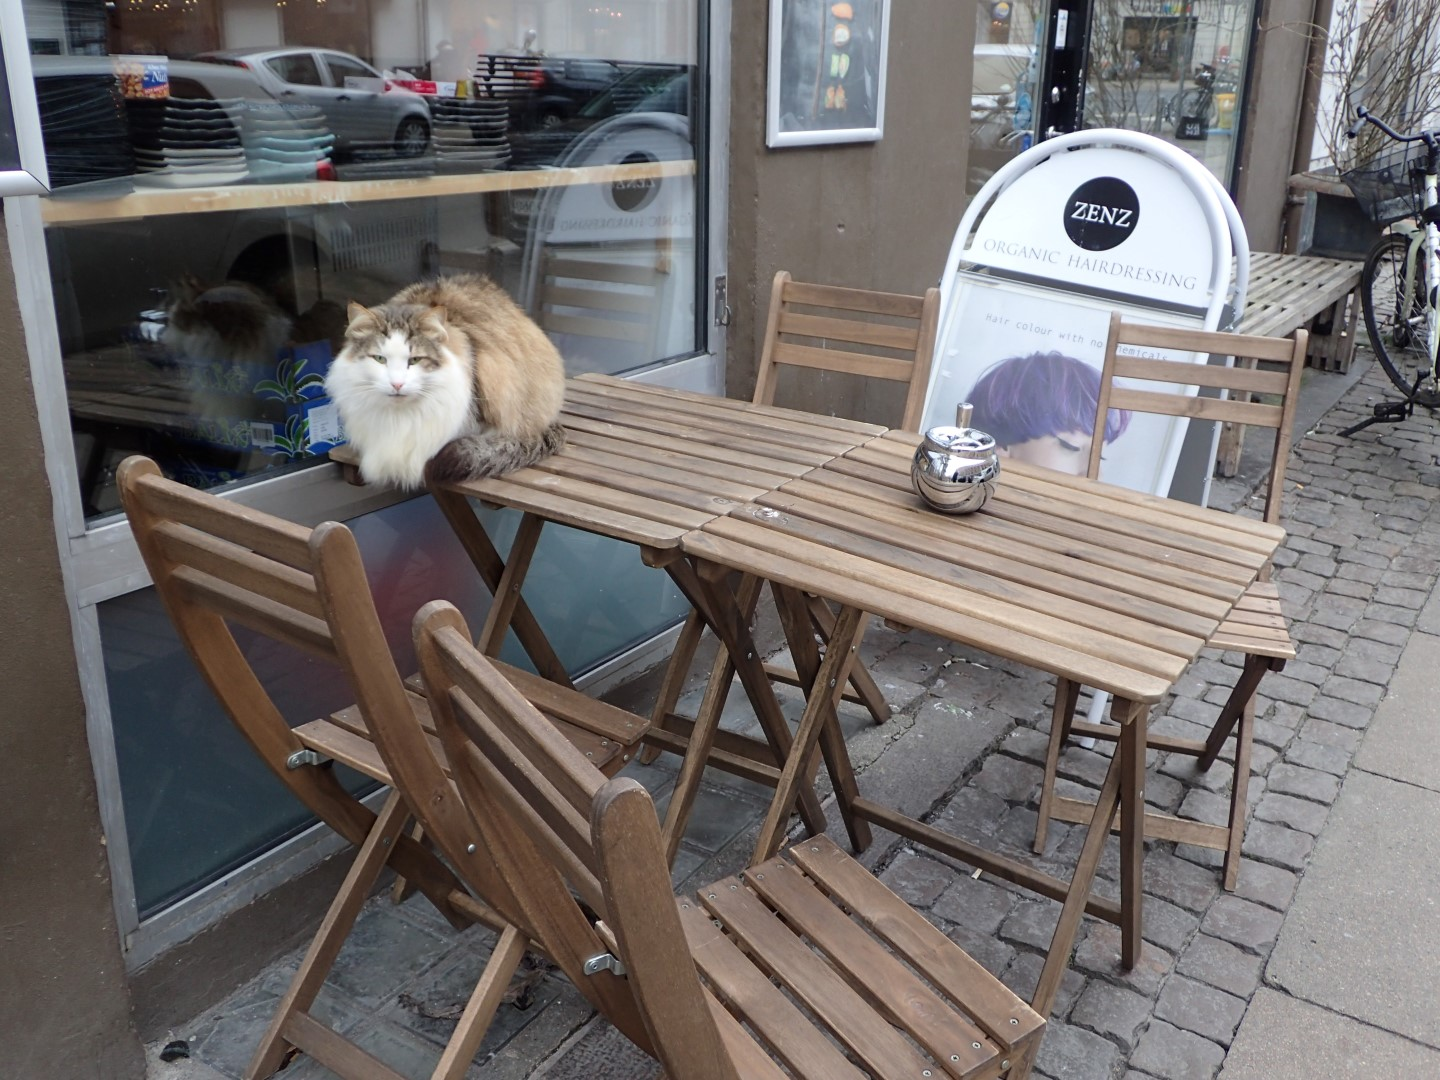 A Cat outside the Hairdresser